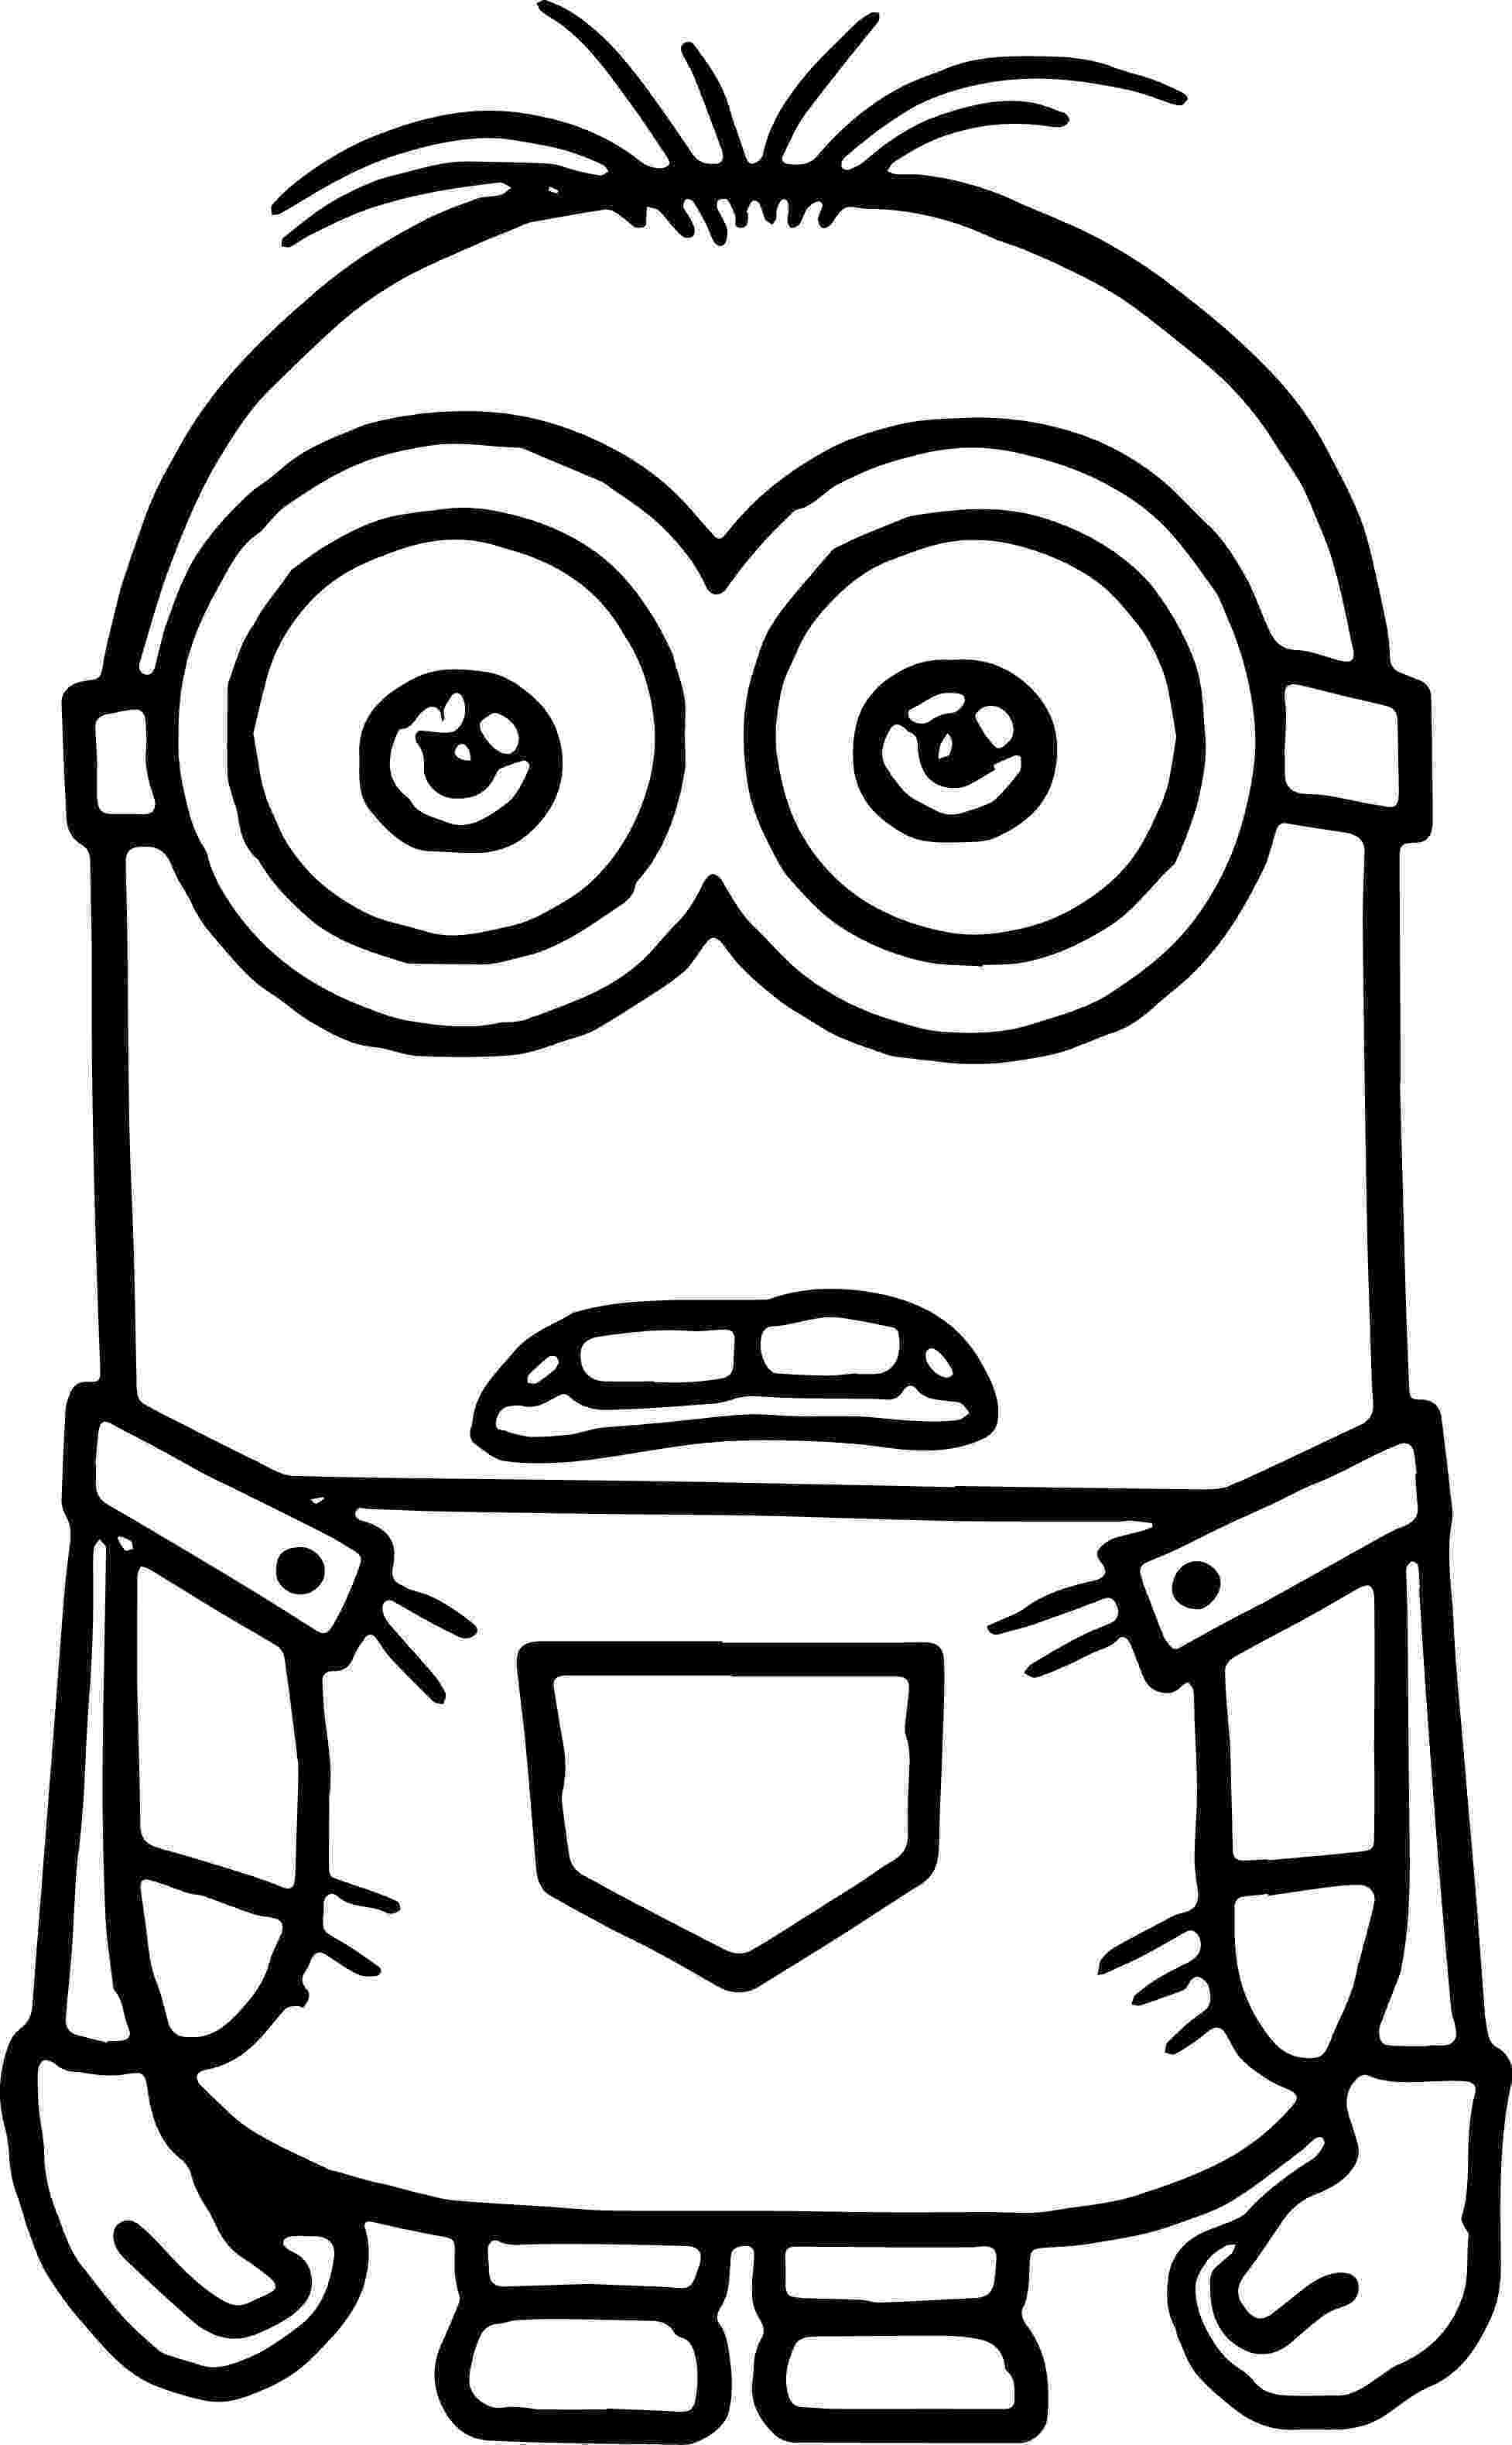 pictures of minions to color minion very cute coloring page minion coloring pages pictures minions color of to